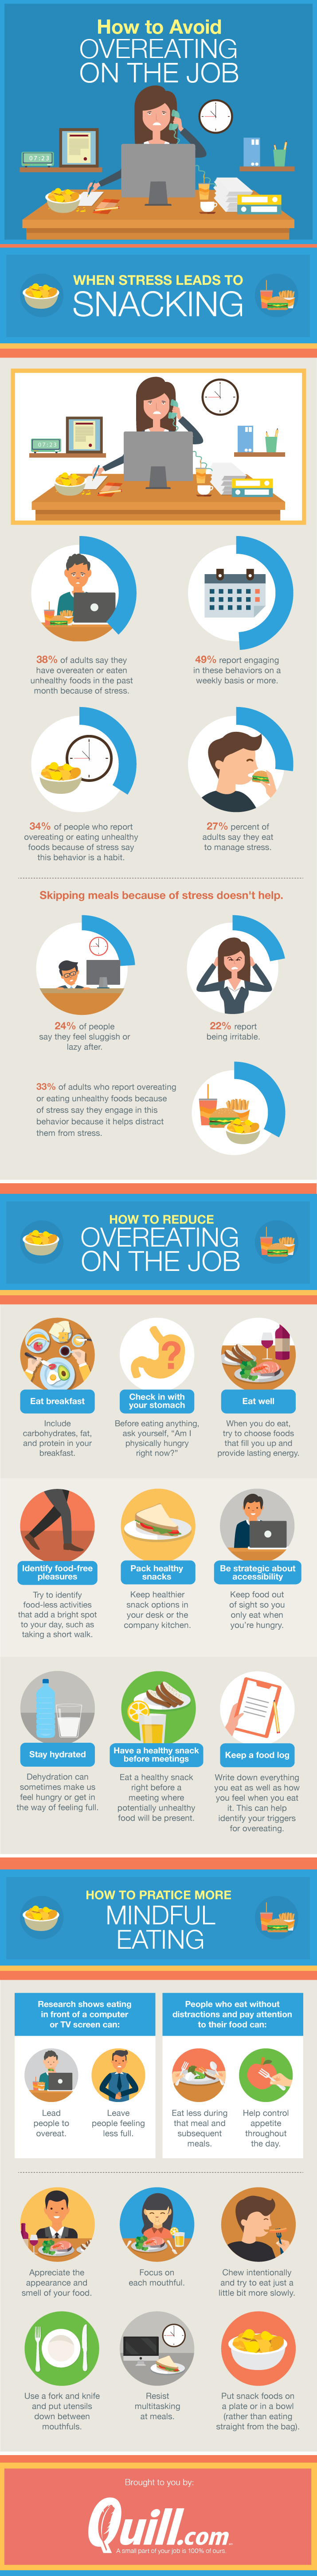 How to Break the Job-Stress and Overeating Nexus - Infographic